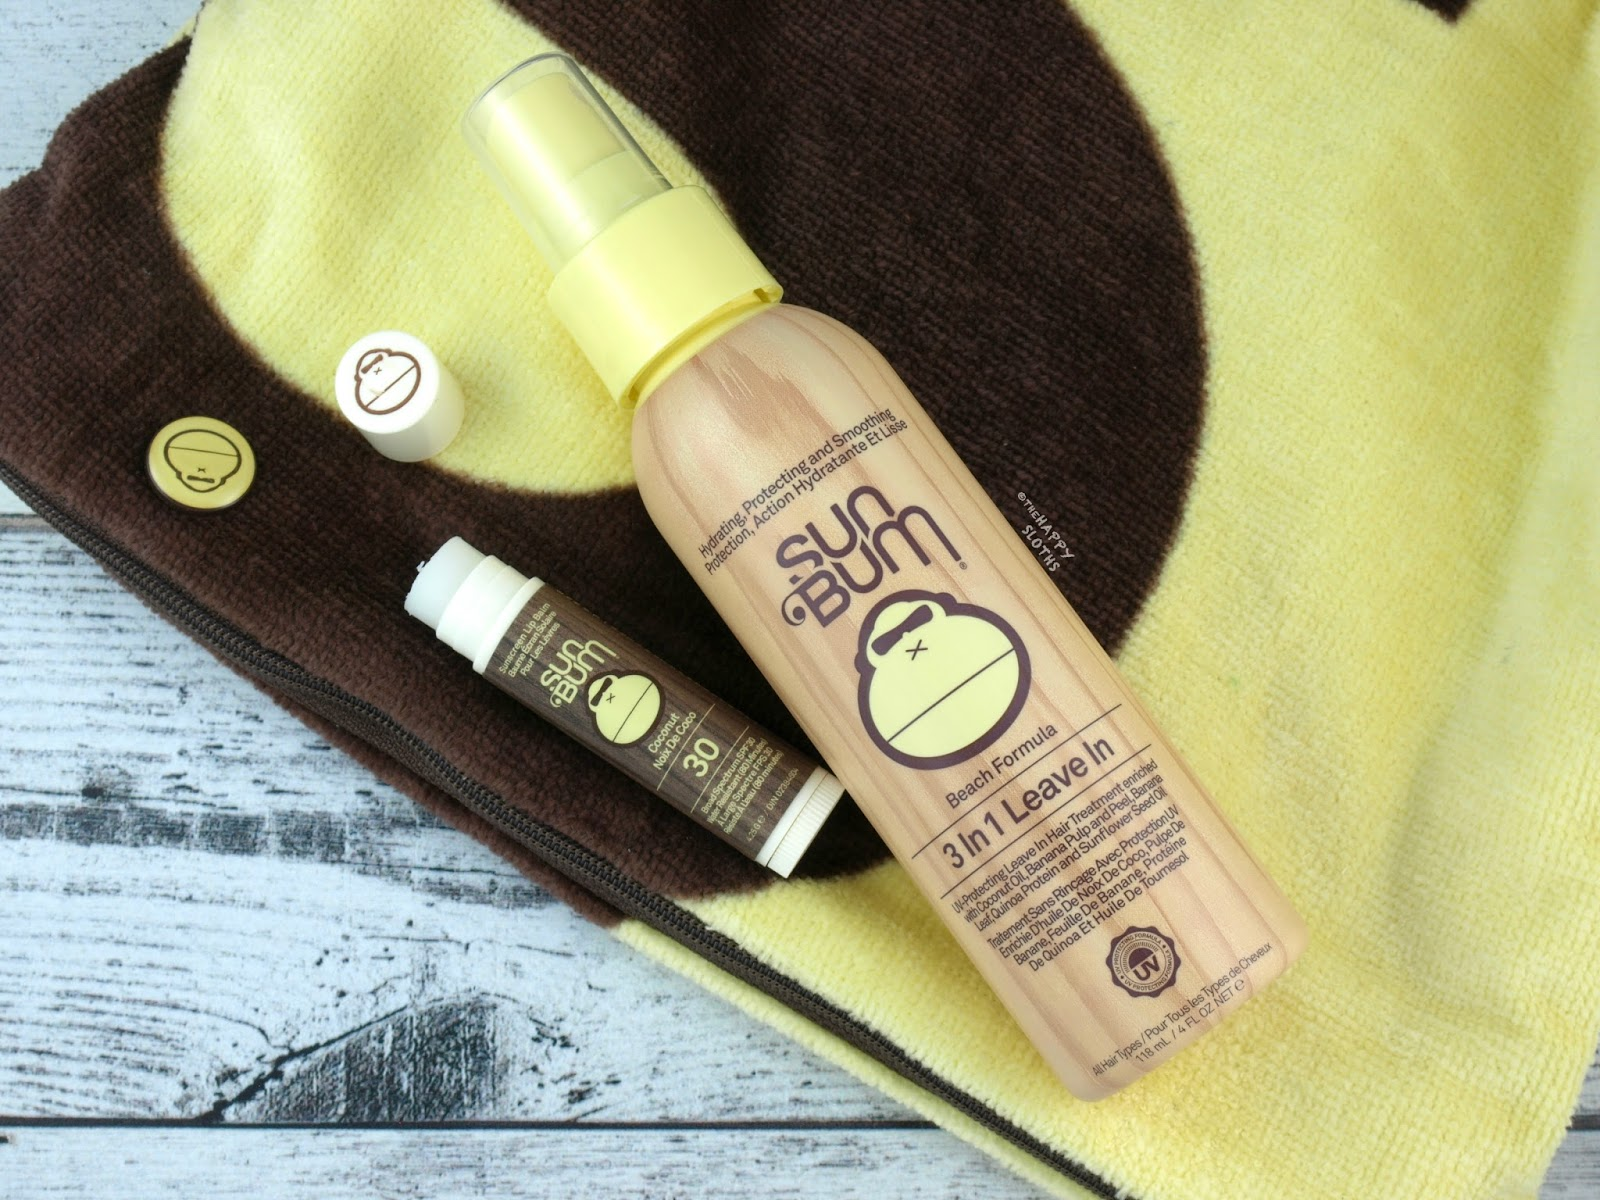 Sum Bum & Baby Bum | Sunscreen Lip Balm & 3-in-1 Leave In Hair Treatment